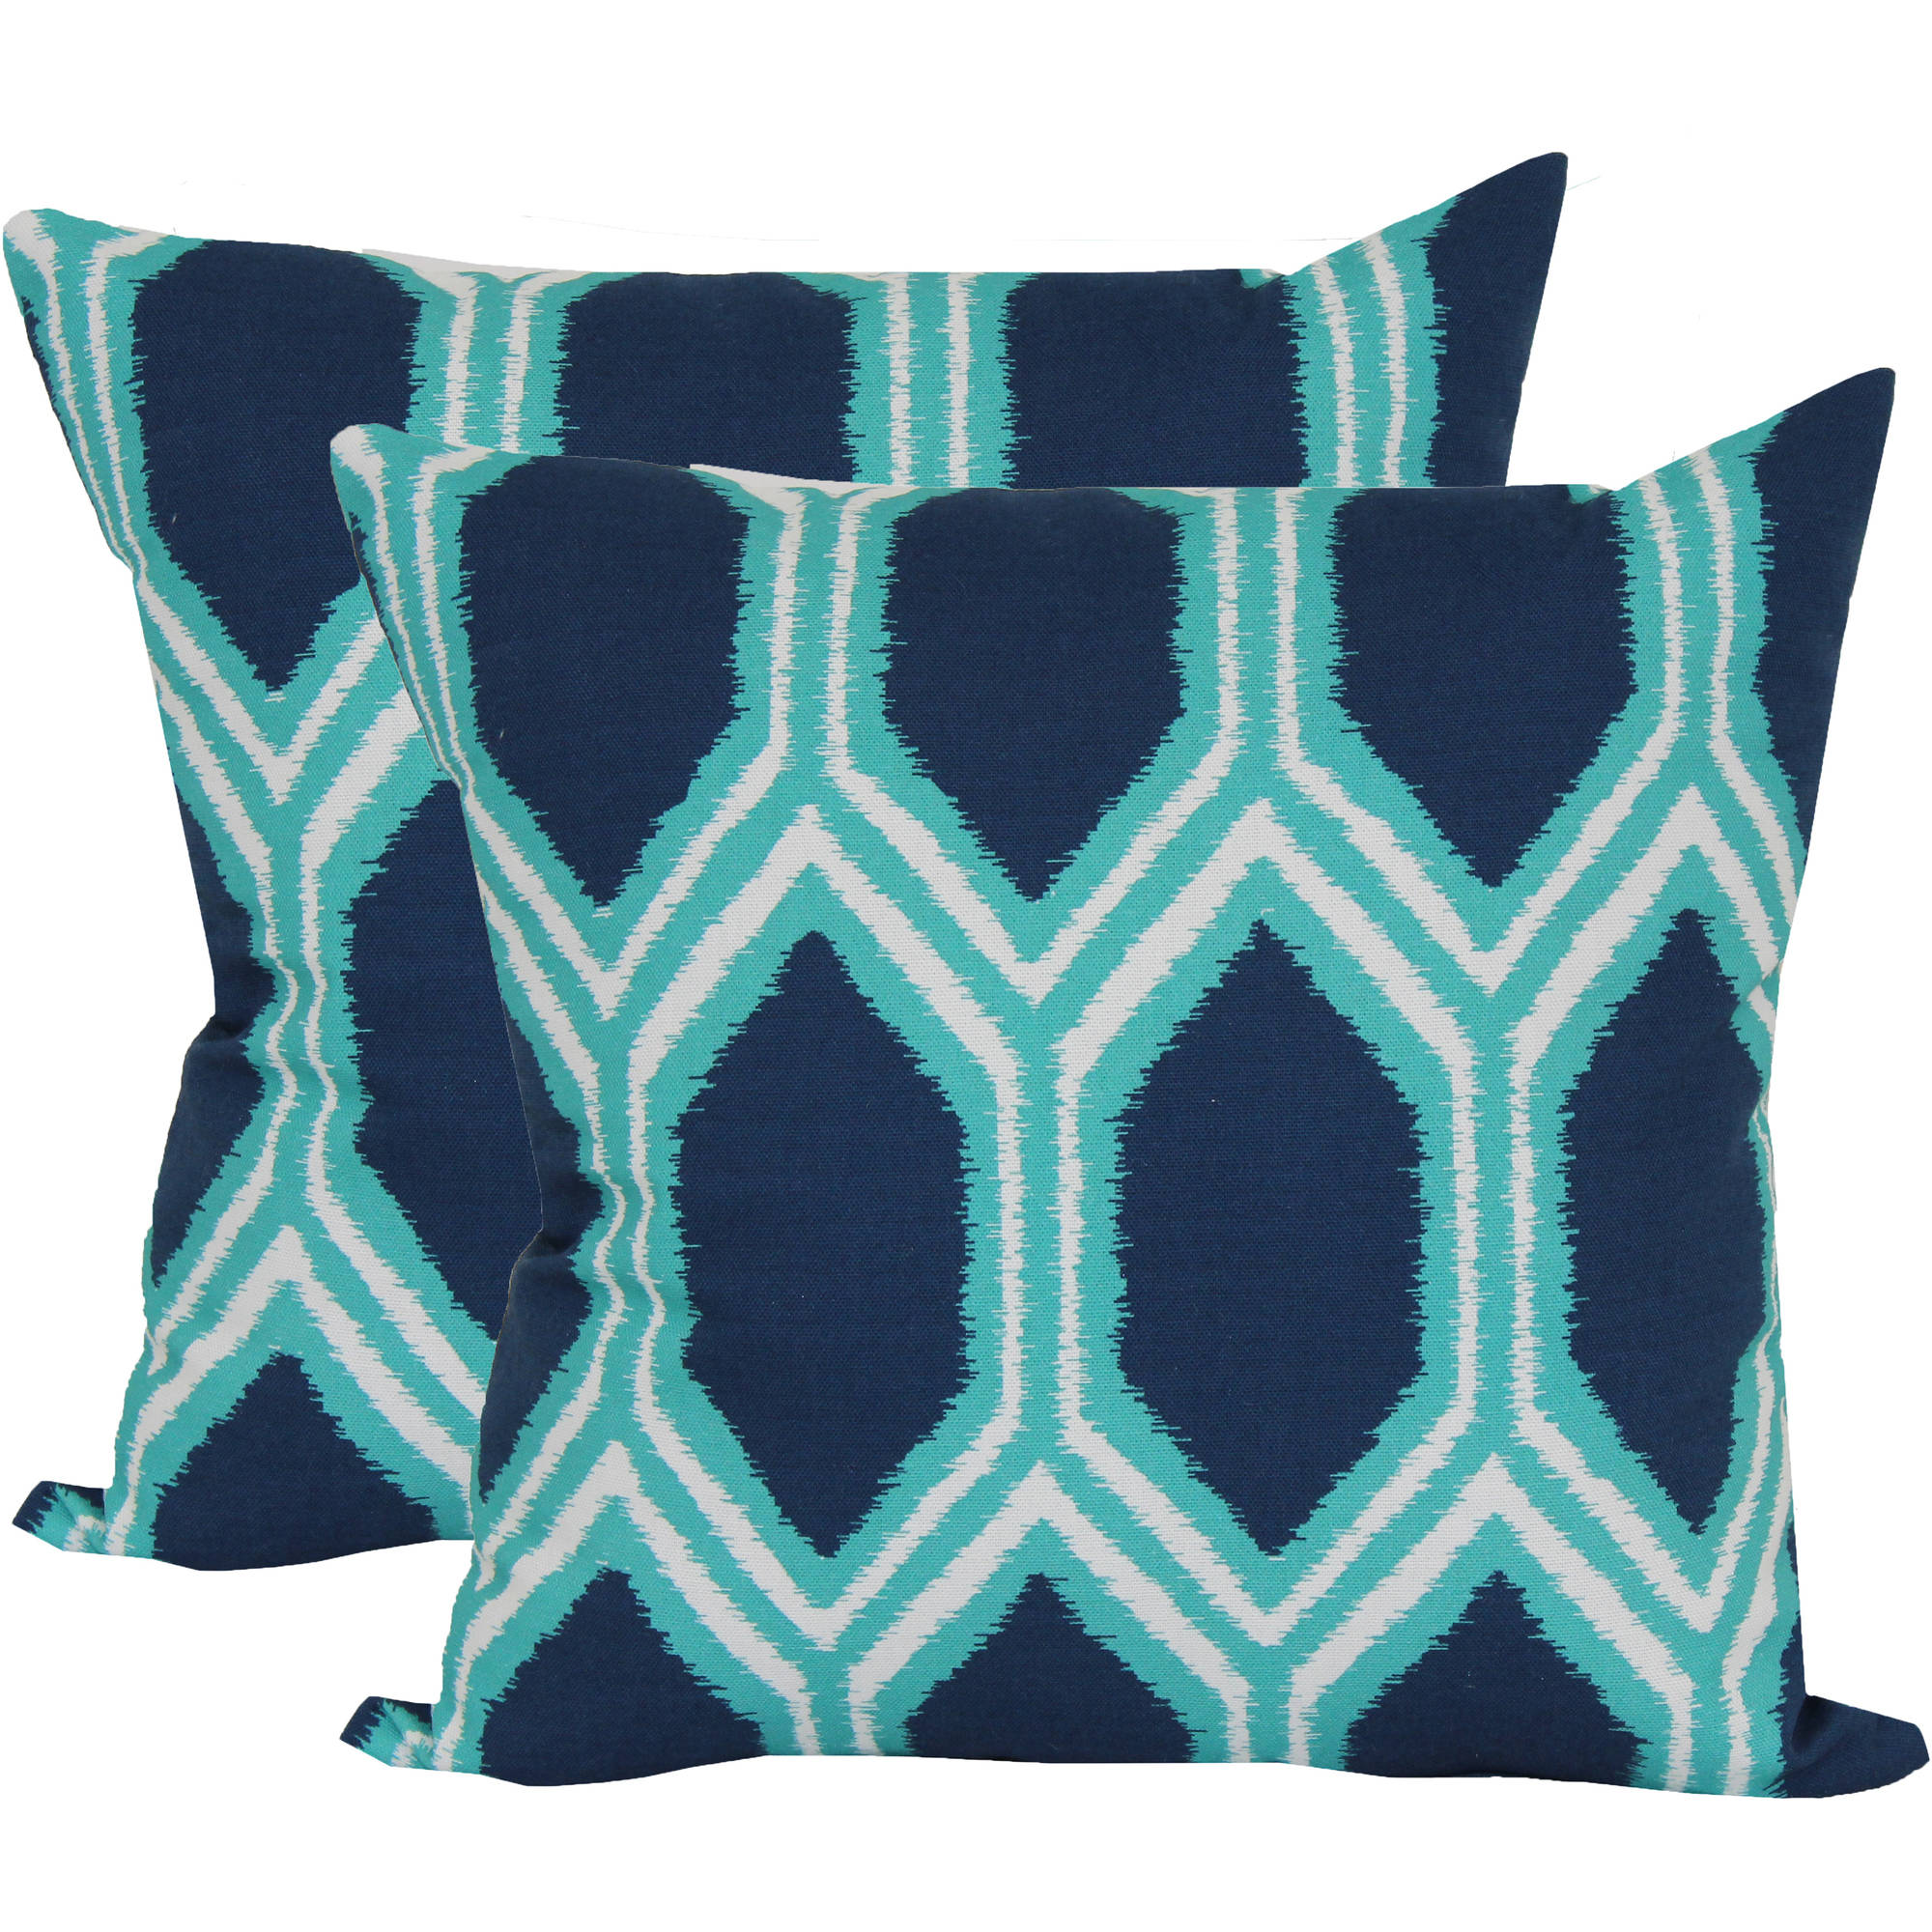 Mainstays Honeycomb Blue Outdoor Toss Pillow, 2 Pack